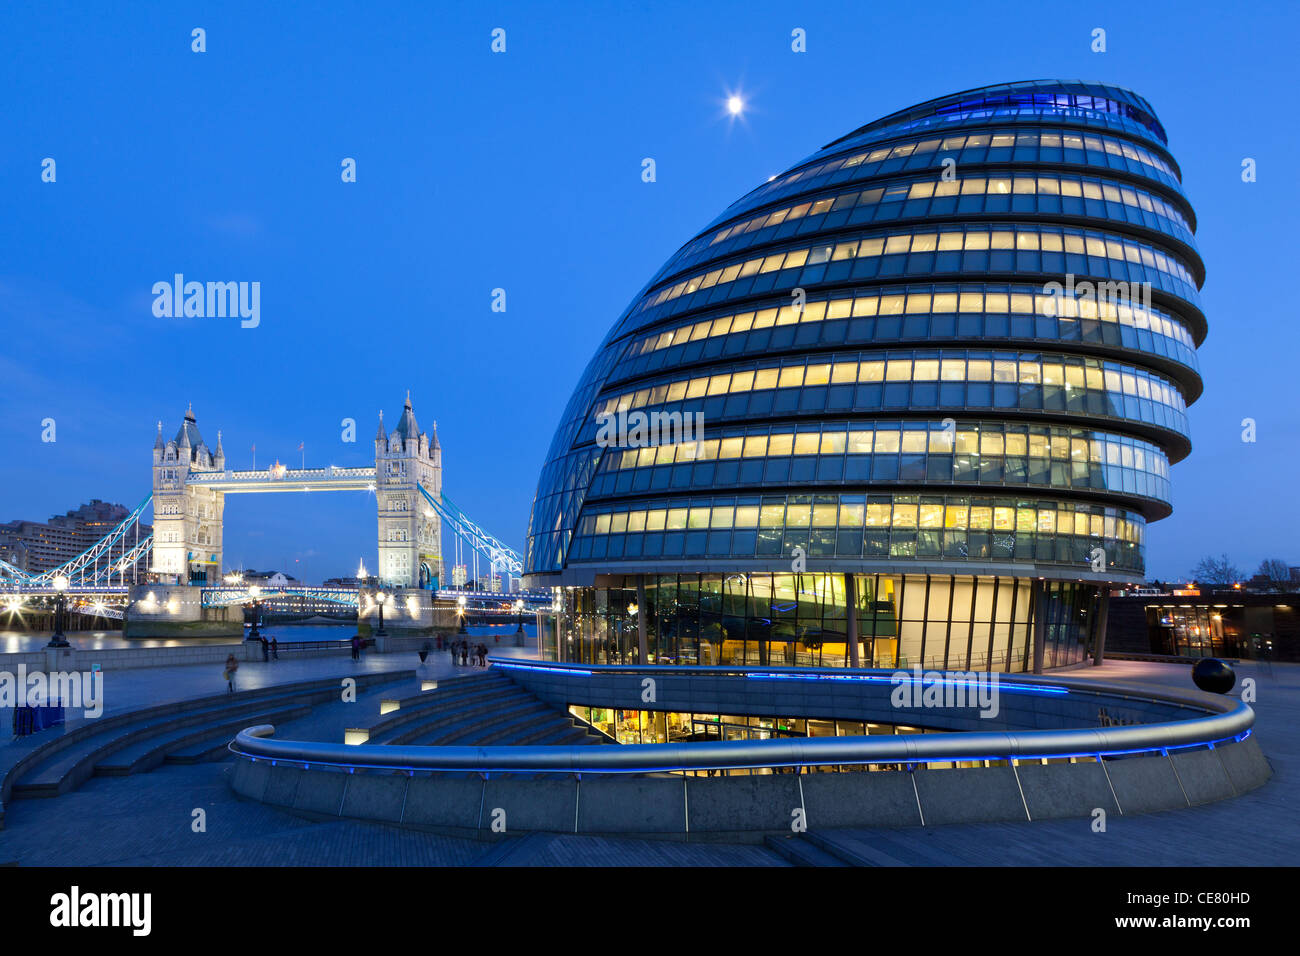 City Hall, headquarters of the Greater London Authority (GLA) and Tower Bridge, London just after sunset - Stock Image